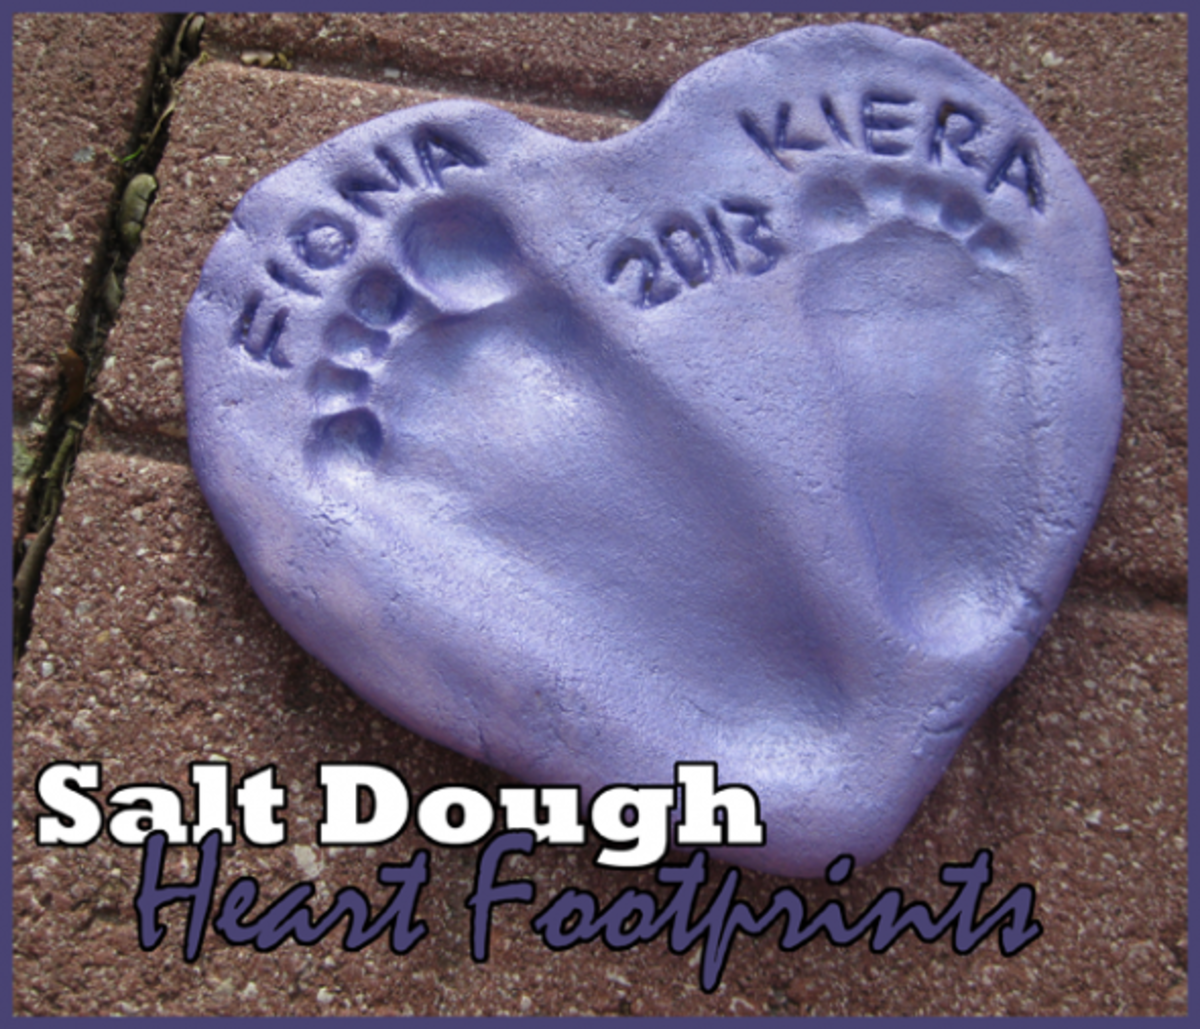 footprint salt dough keepsake salt dough footprint hubpages 4496